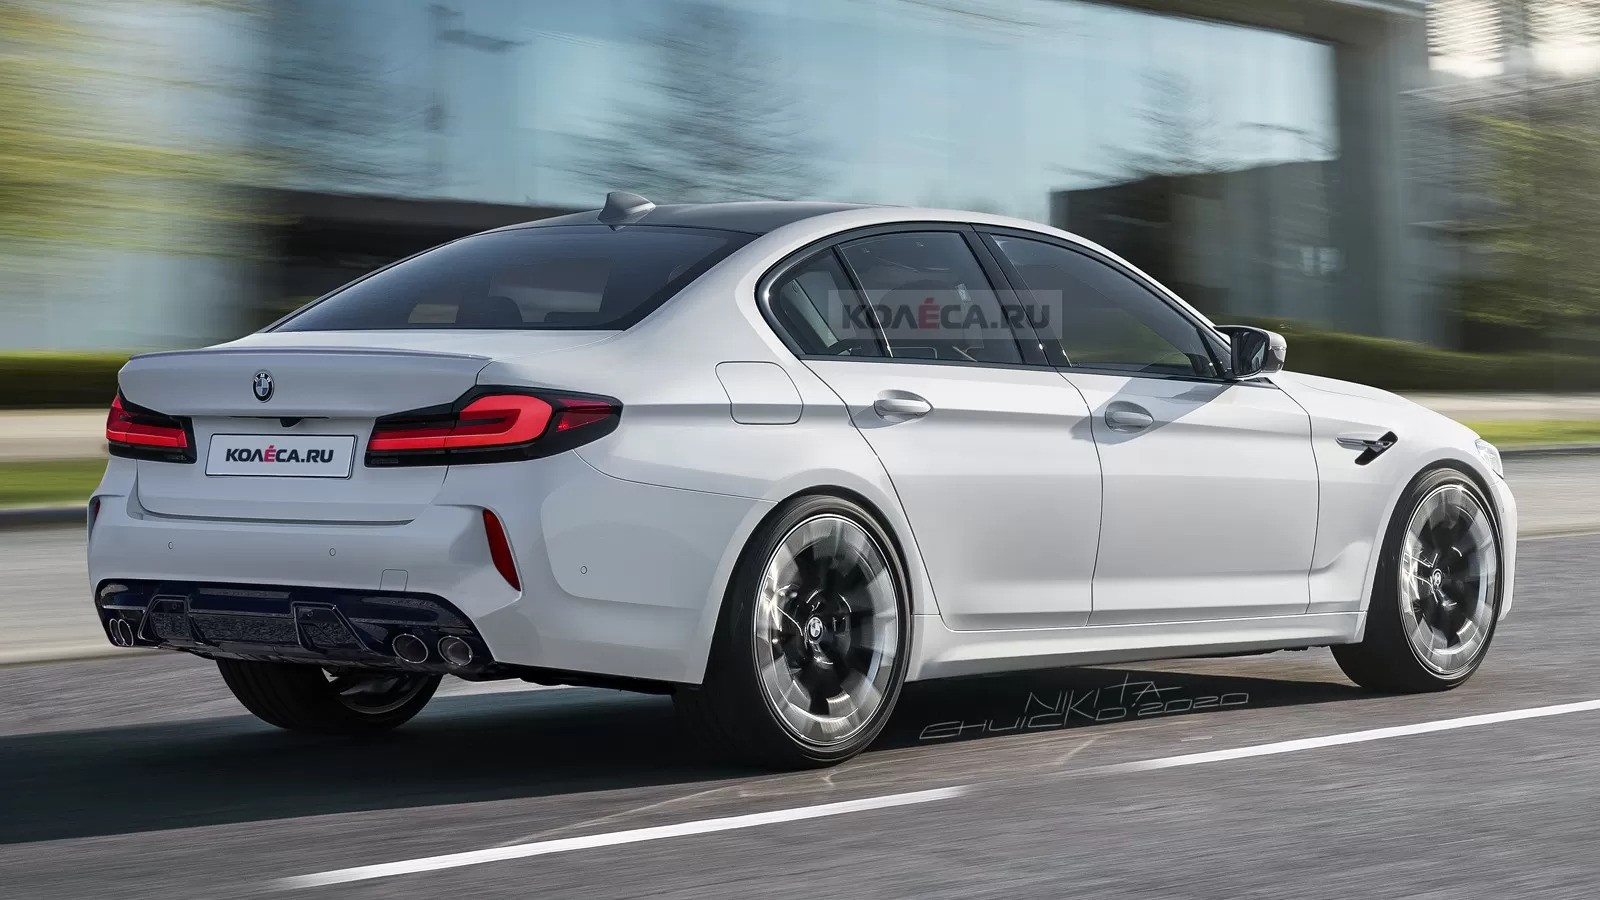 2021 bmw m5 gets accurately rendered ahead of reveal